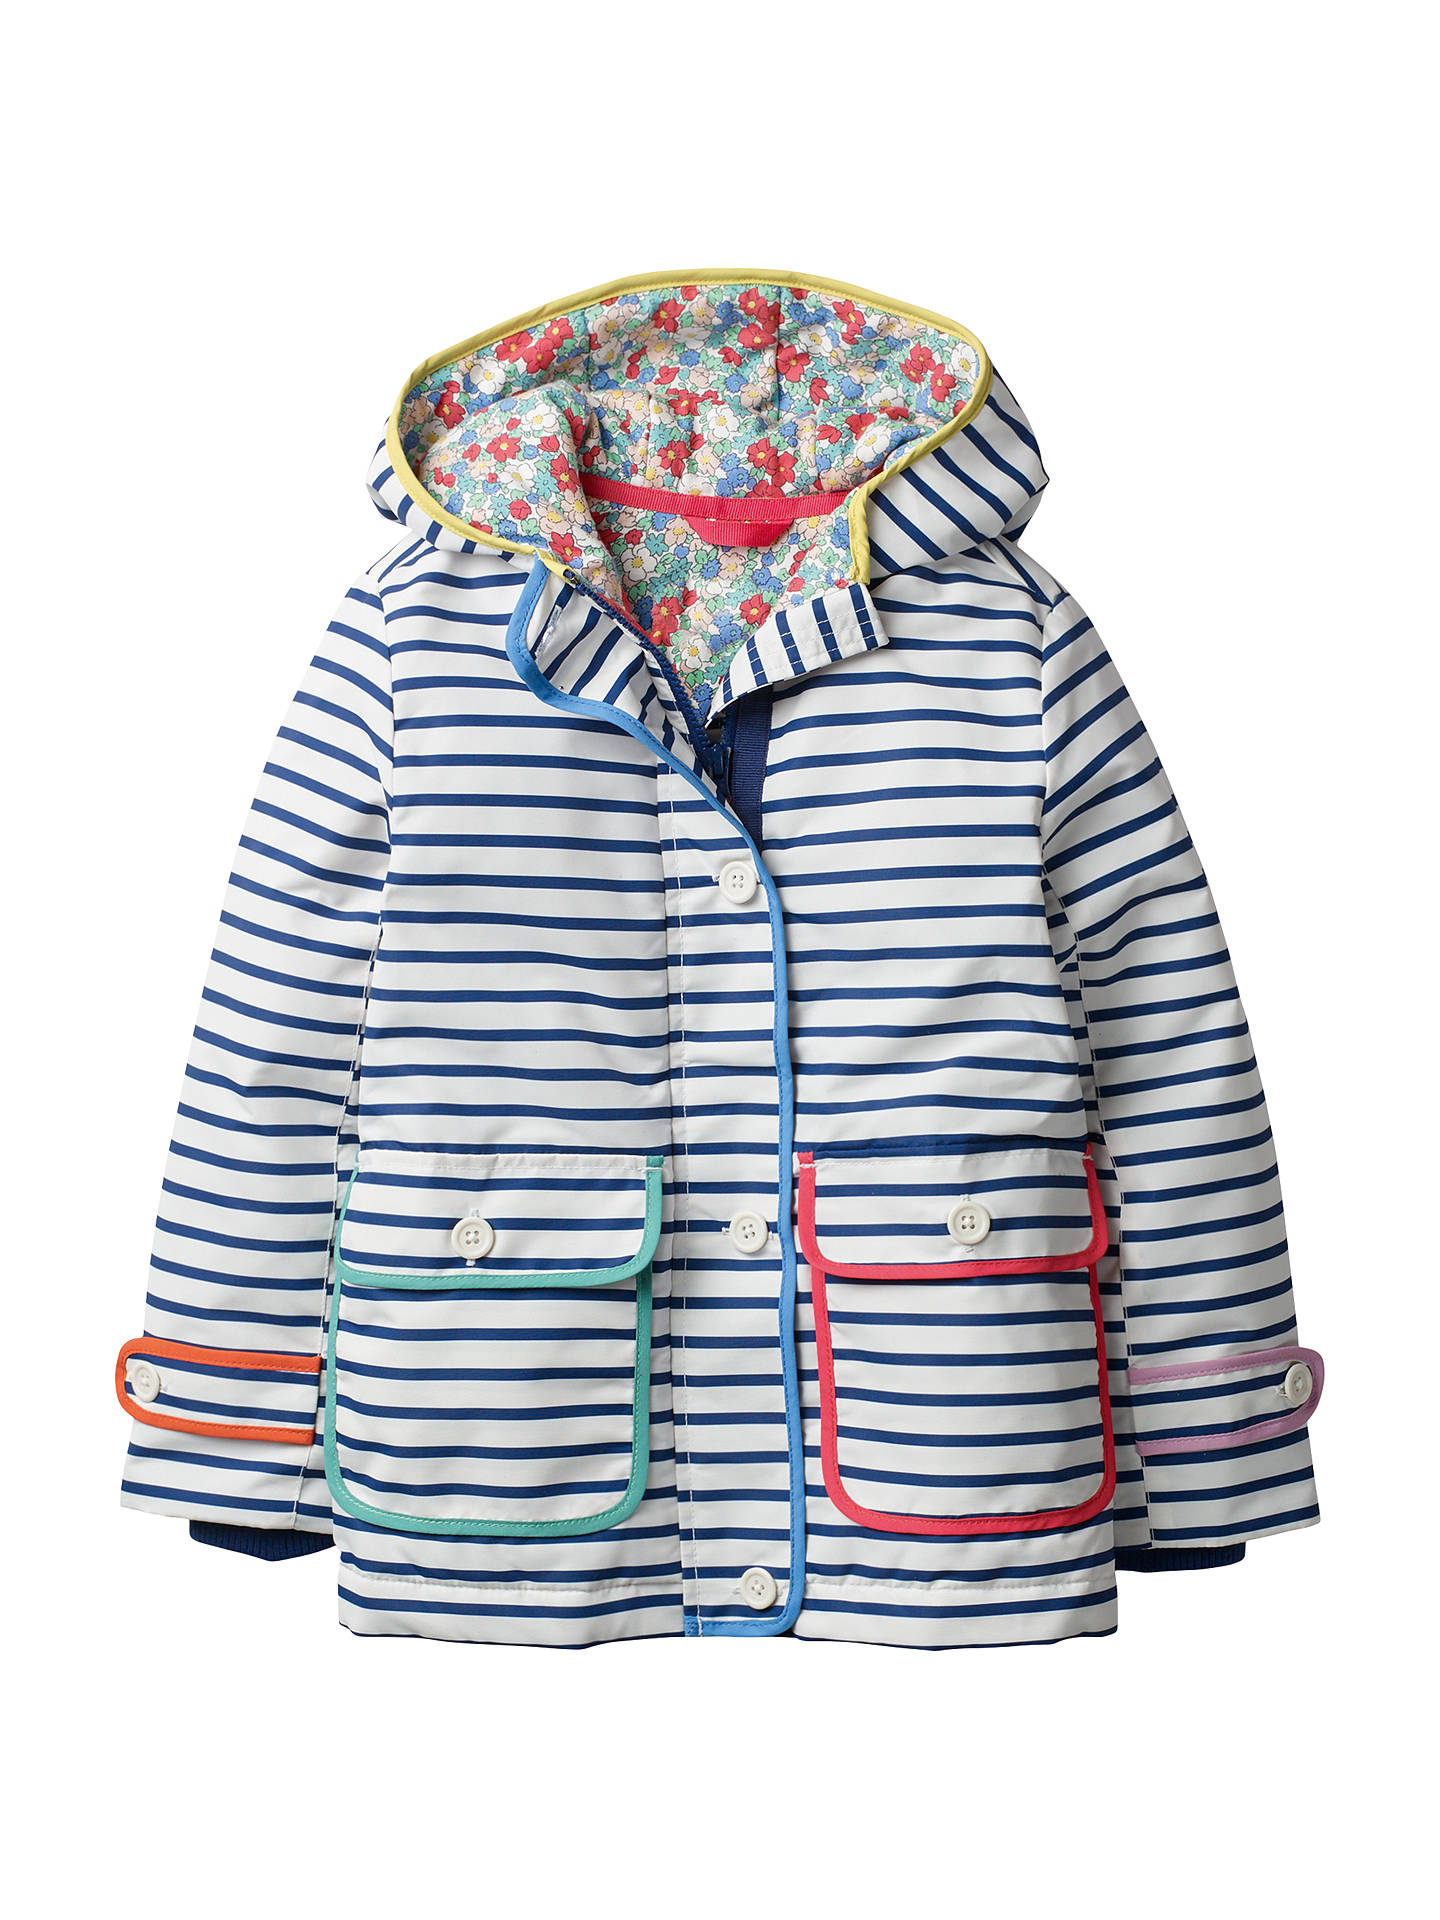 a8ba2a4a847b9 Mini Boden Girls' Printed Anorak Coat, Navy at John Lewis & Partners